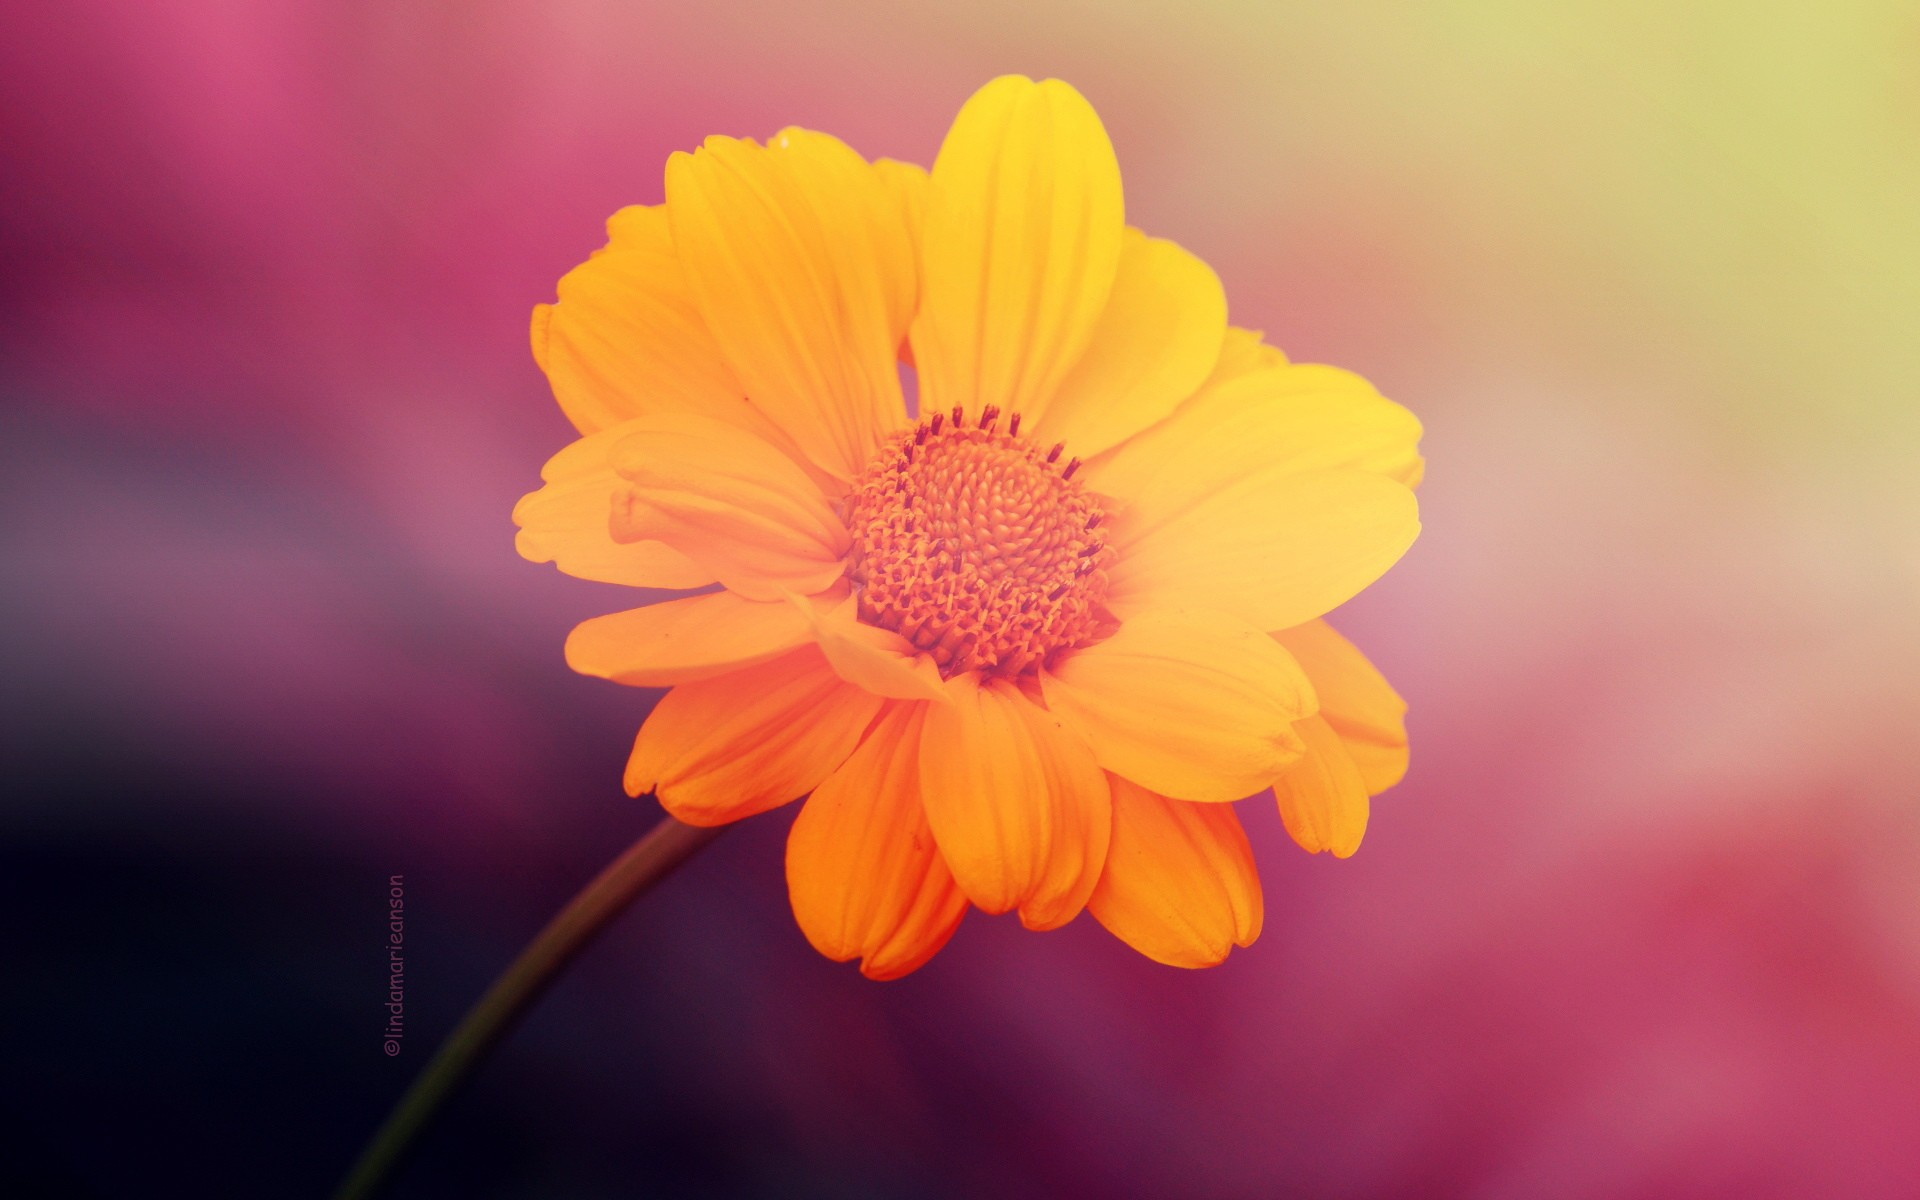 1920x1200 yellow flower on pink background desktop pc and mac wallpaper 1920x1200 yellow flower on pink background mightylinksfo Image collections